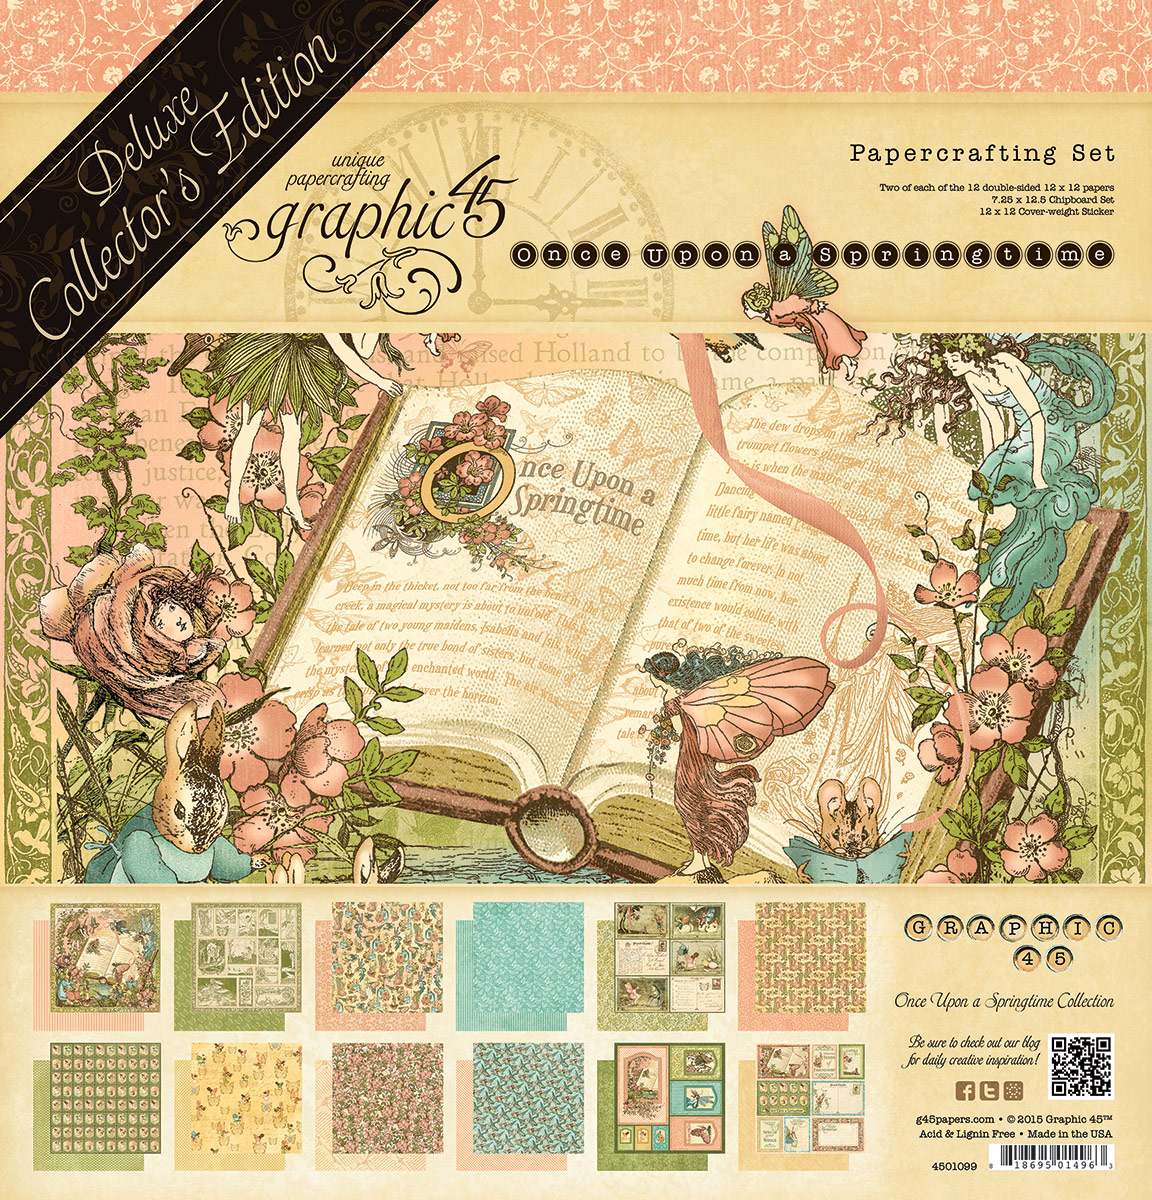 once-upon-a-springtime-deluxe-12x12-pad-cvr (1).jpg